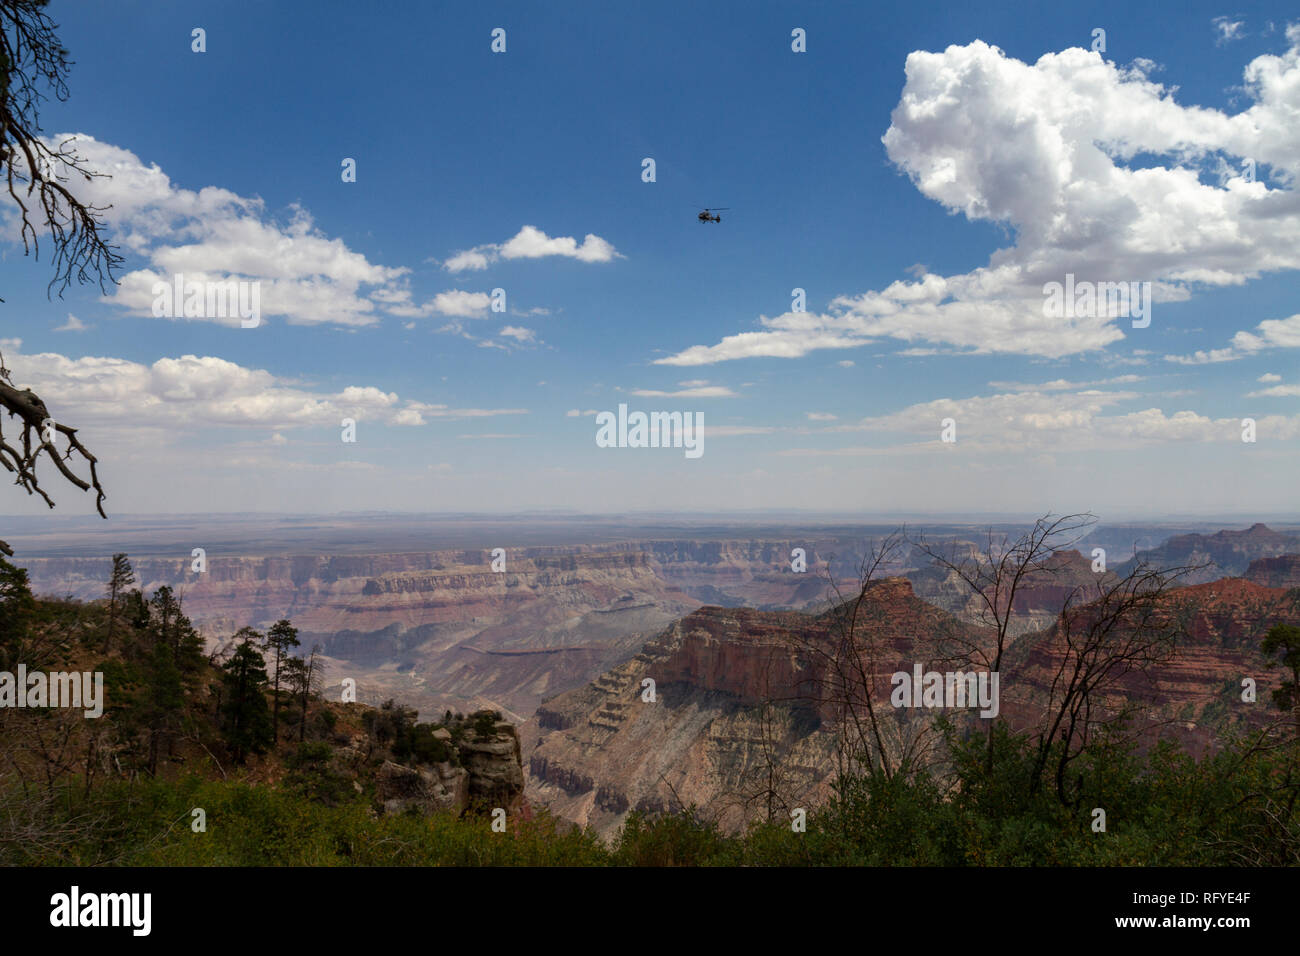 Tourist helicopter passing over the Grand Canyon (see notes), North Rim, Arizona, United States. - Stock Image